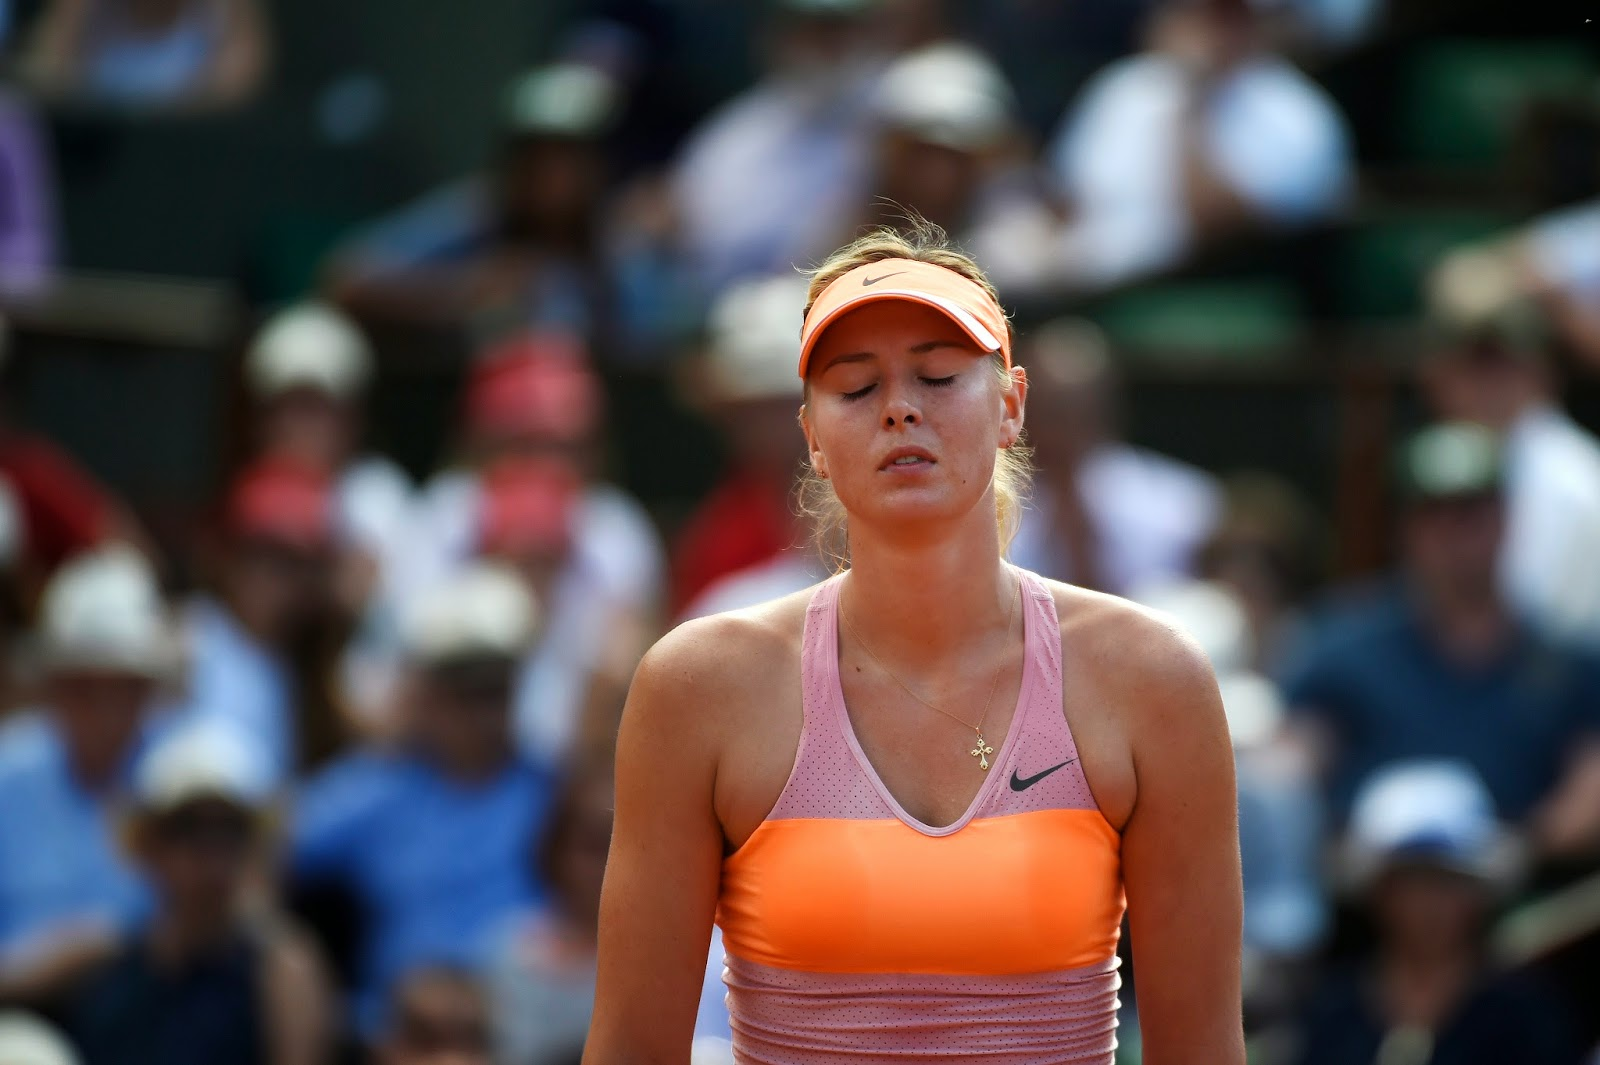 France, French Open, French Open 2014, French Open Trophy, Maria Sharapova, Maria Sharapova Photo, Maria Sharapova vs Simona Halep, Paris, Simona Halep, Sports, Tennis, Tennis Players, Women Tennis Players,